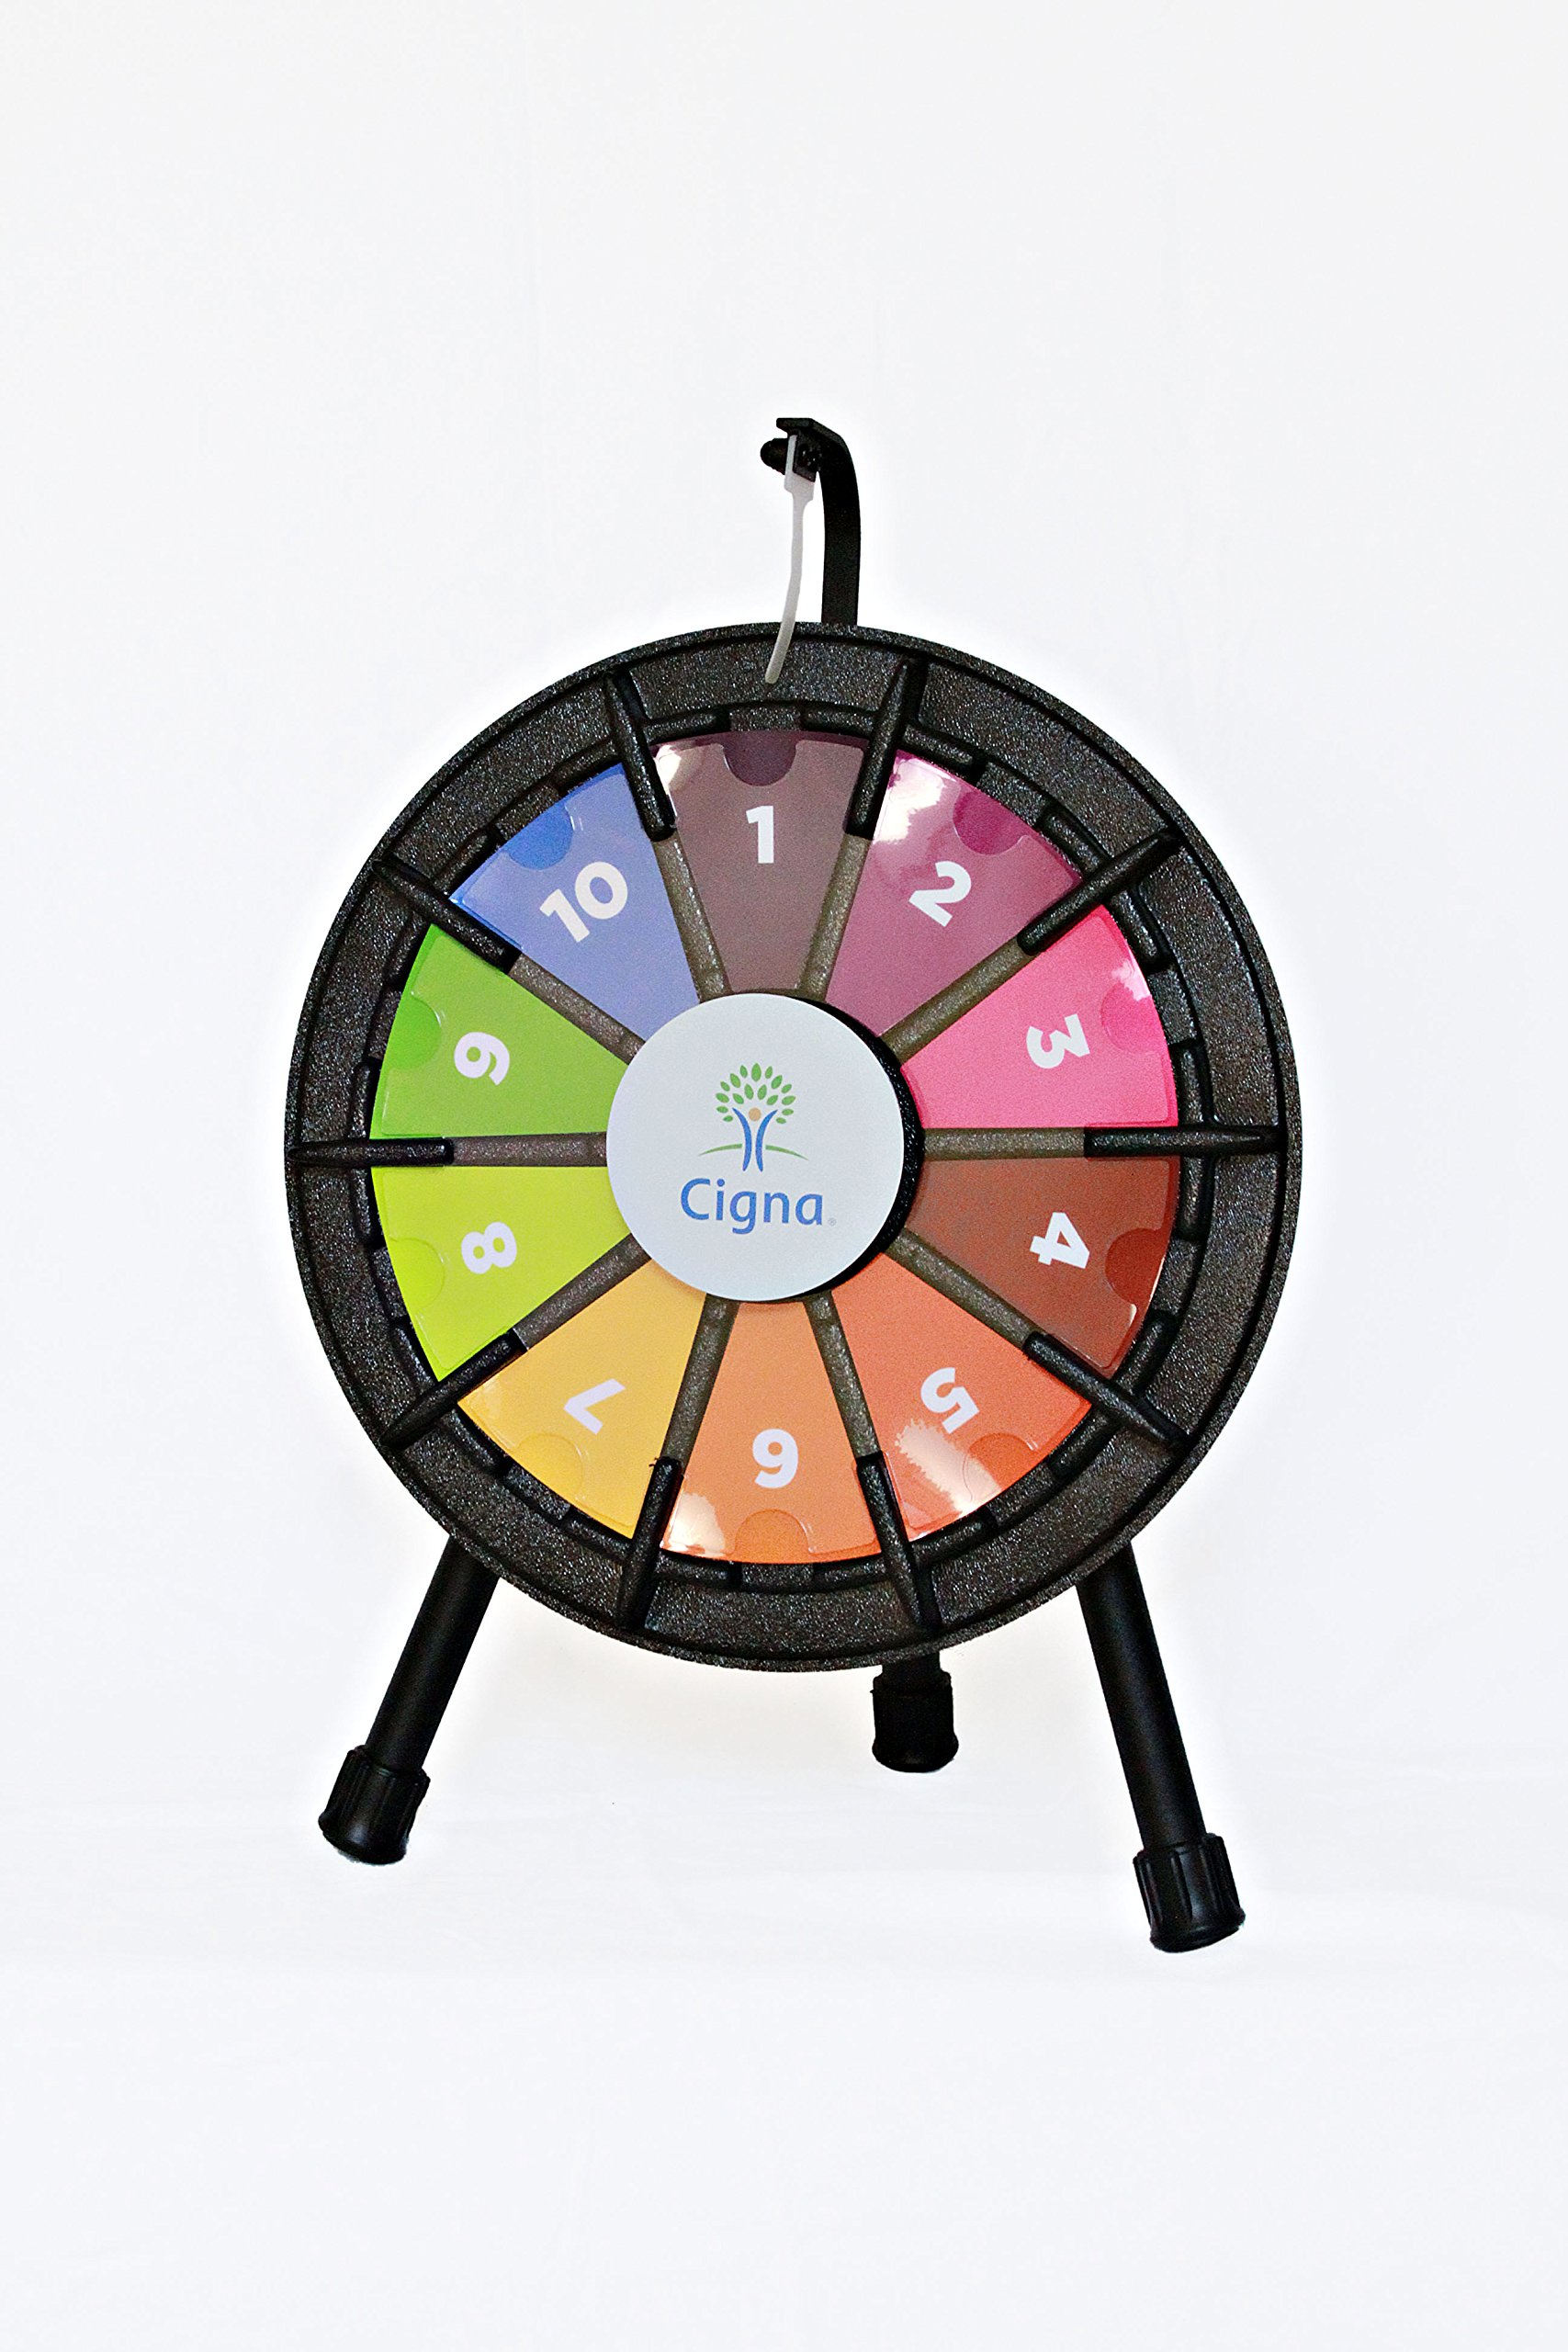 10 Slot Tabletop Micro Prize Wheel (14 Inch Diameter) by Prize Wheels R Fun